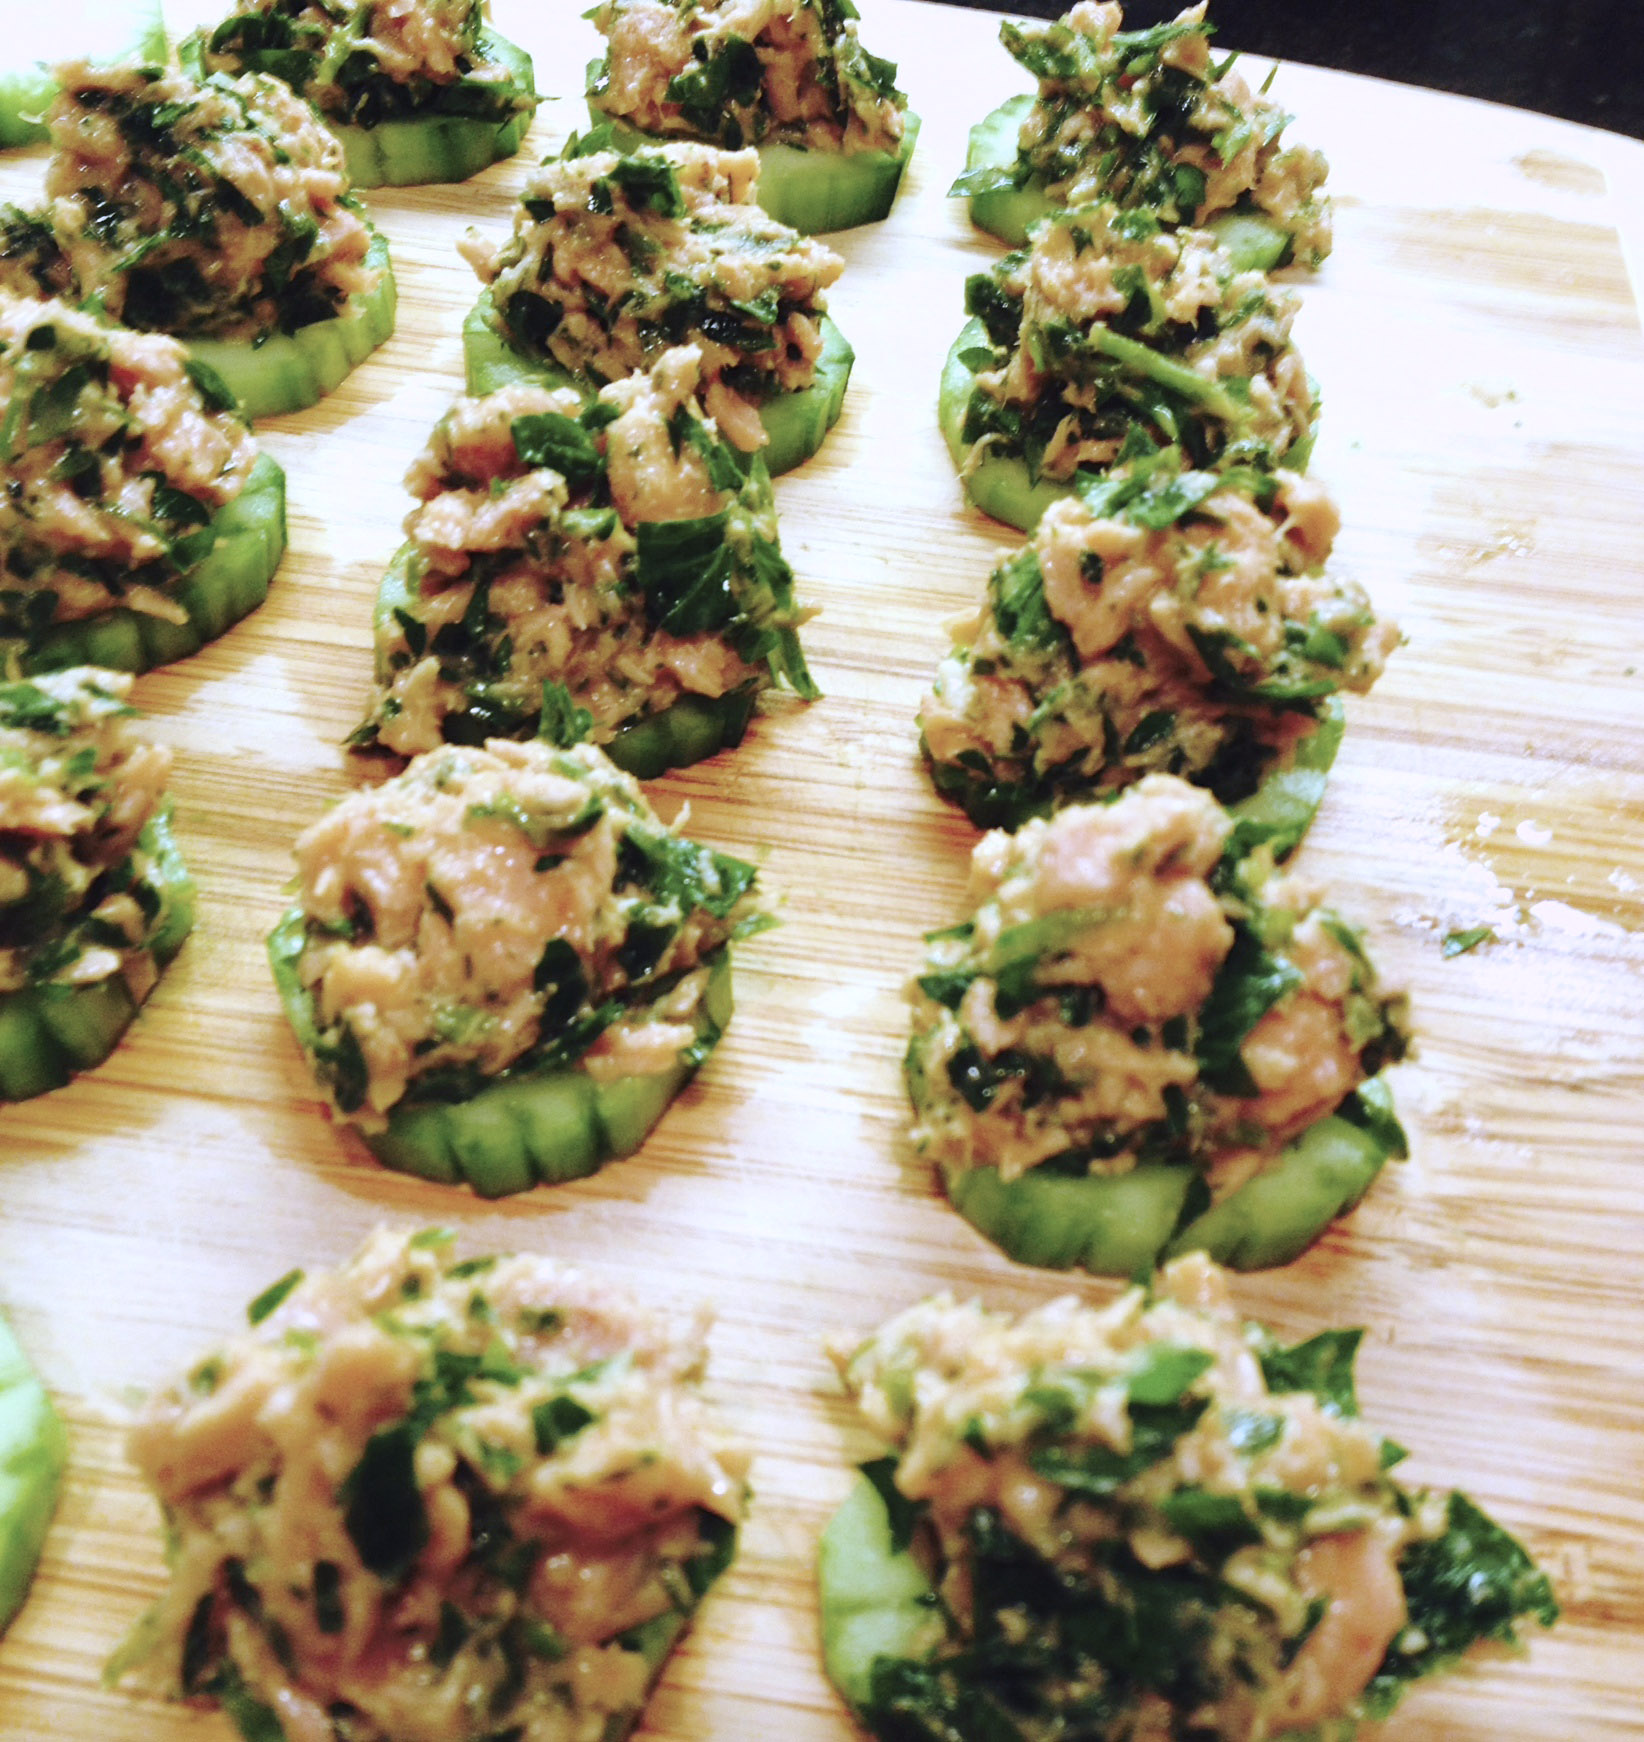 spicy tuna bites on cucumber rounds :: by radish*rose